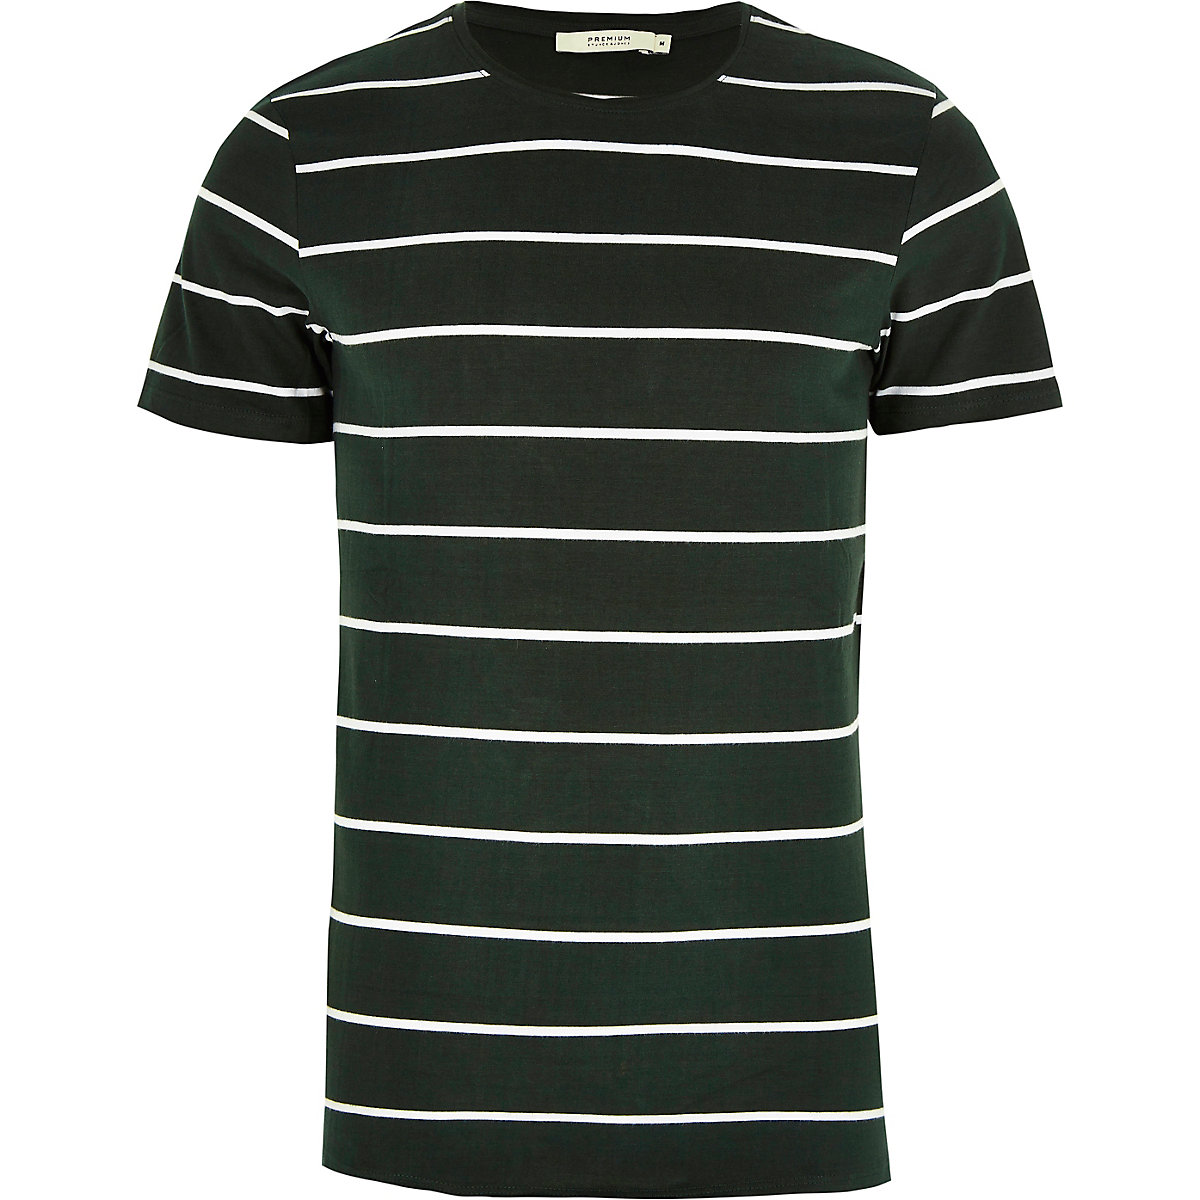 Jack & Jones green stripe T-shirt